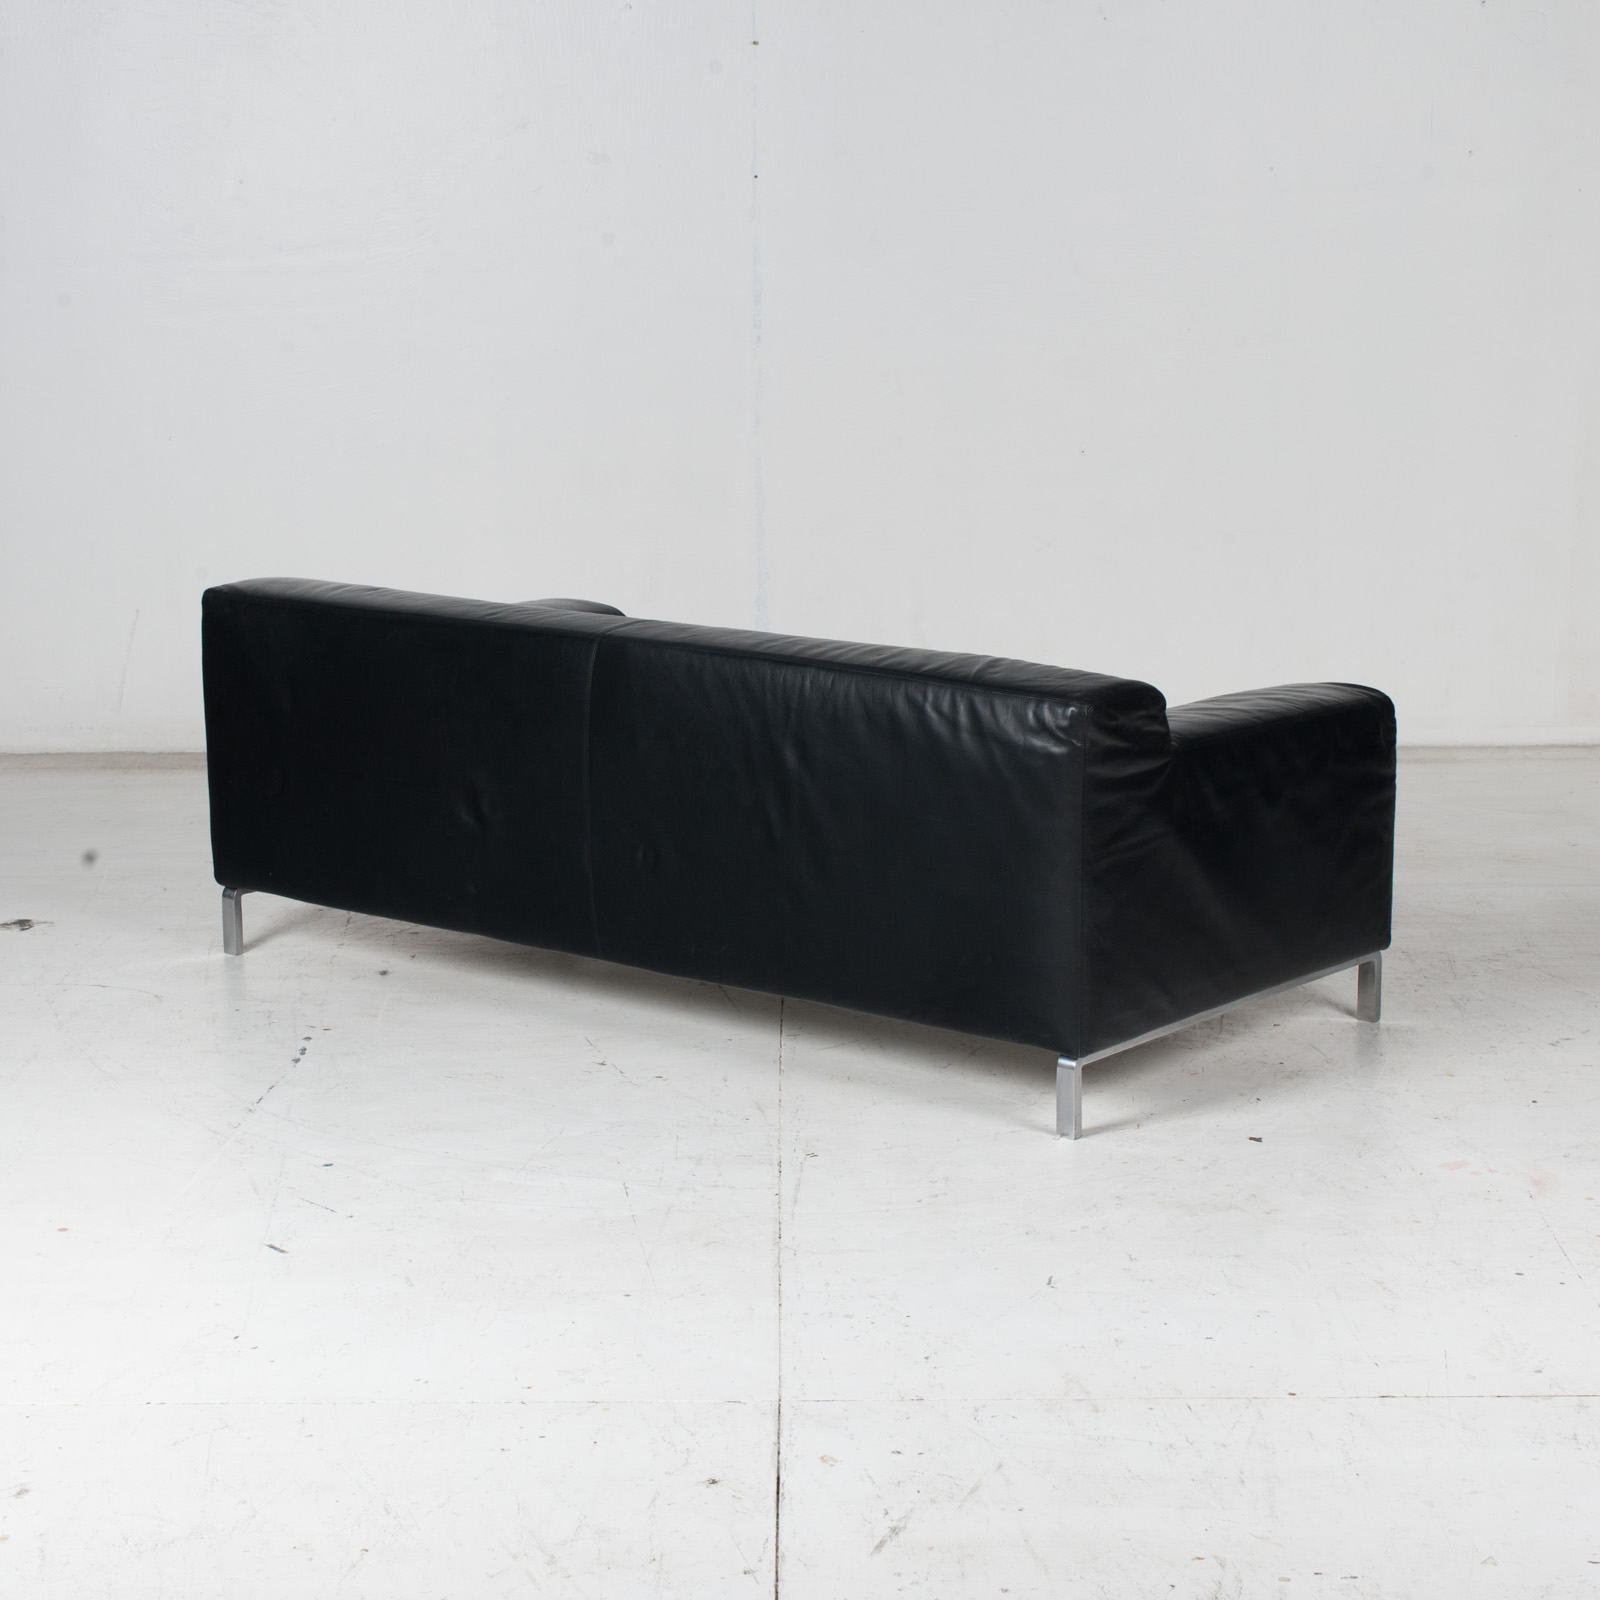 Model Greg 2 Seat Sofa By E. Progetti With Back Upholstered In Black Leather And Seat In Blue Fabric With Chrome Legs, 1960s, Italy 7